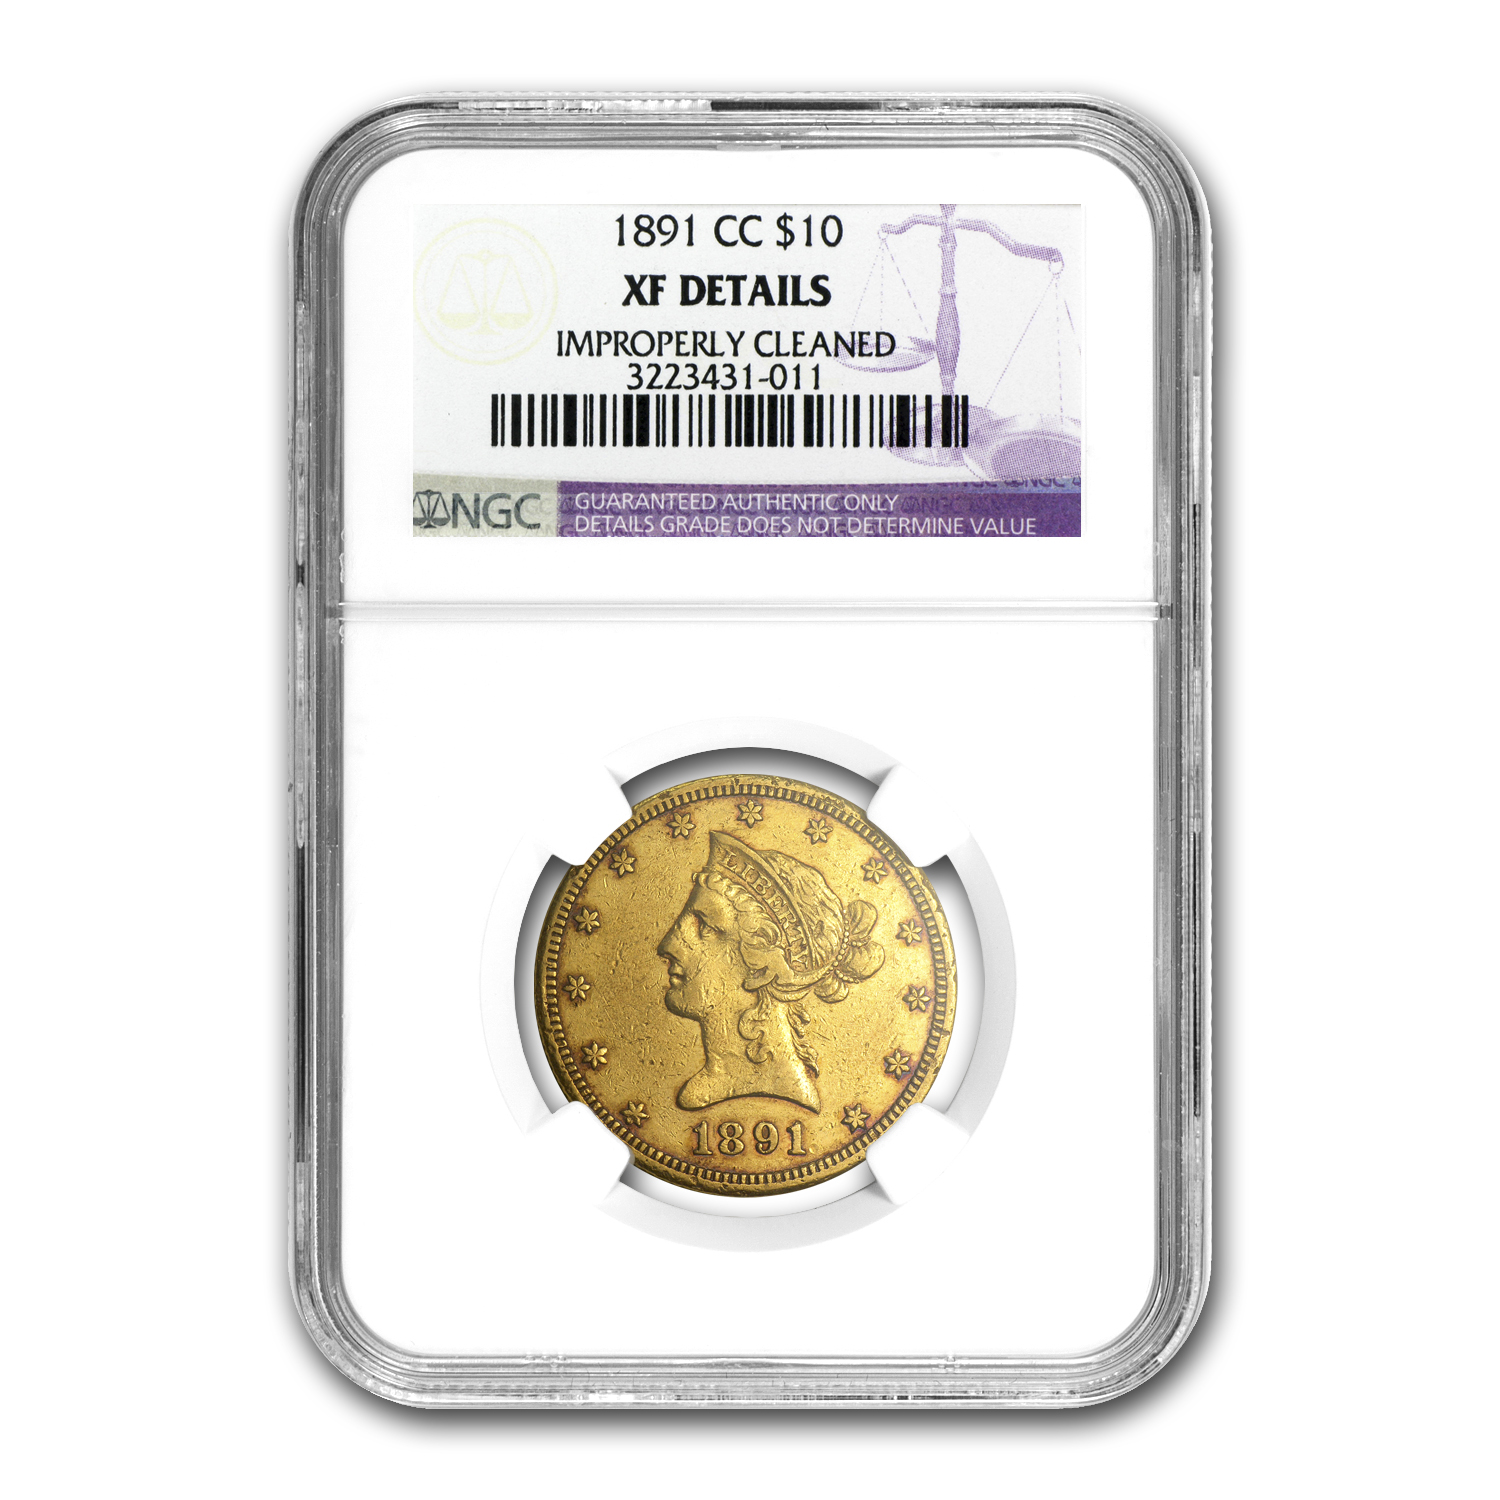 1891-CC/CC $10 Liberty Gold Eagle - XF Details - (Cleaned) NGC